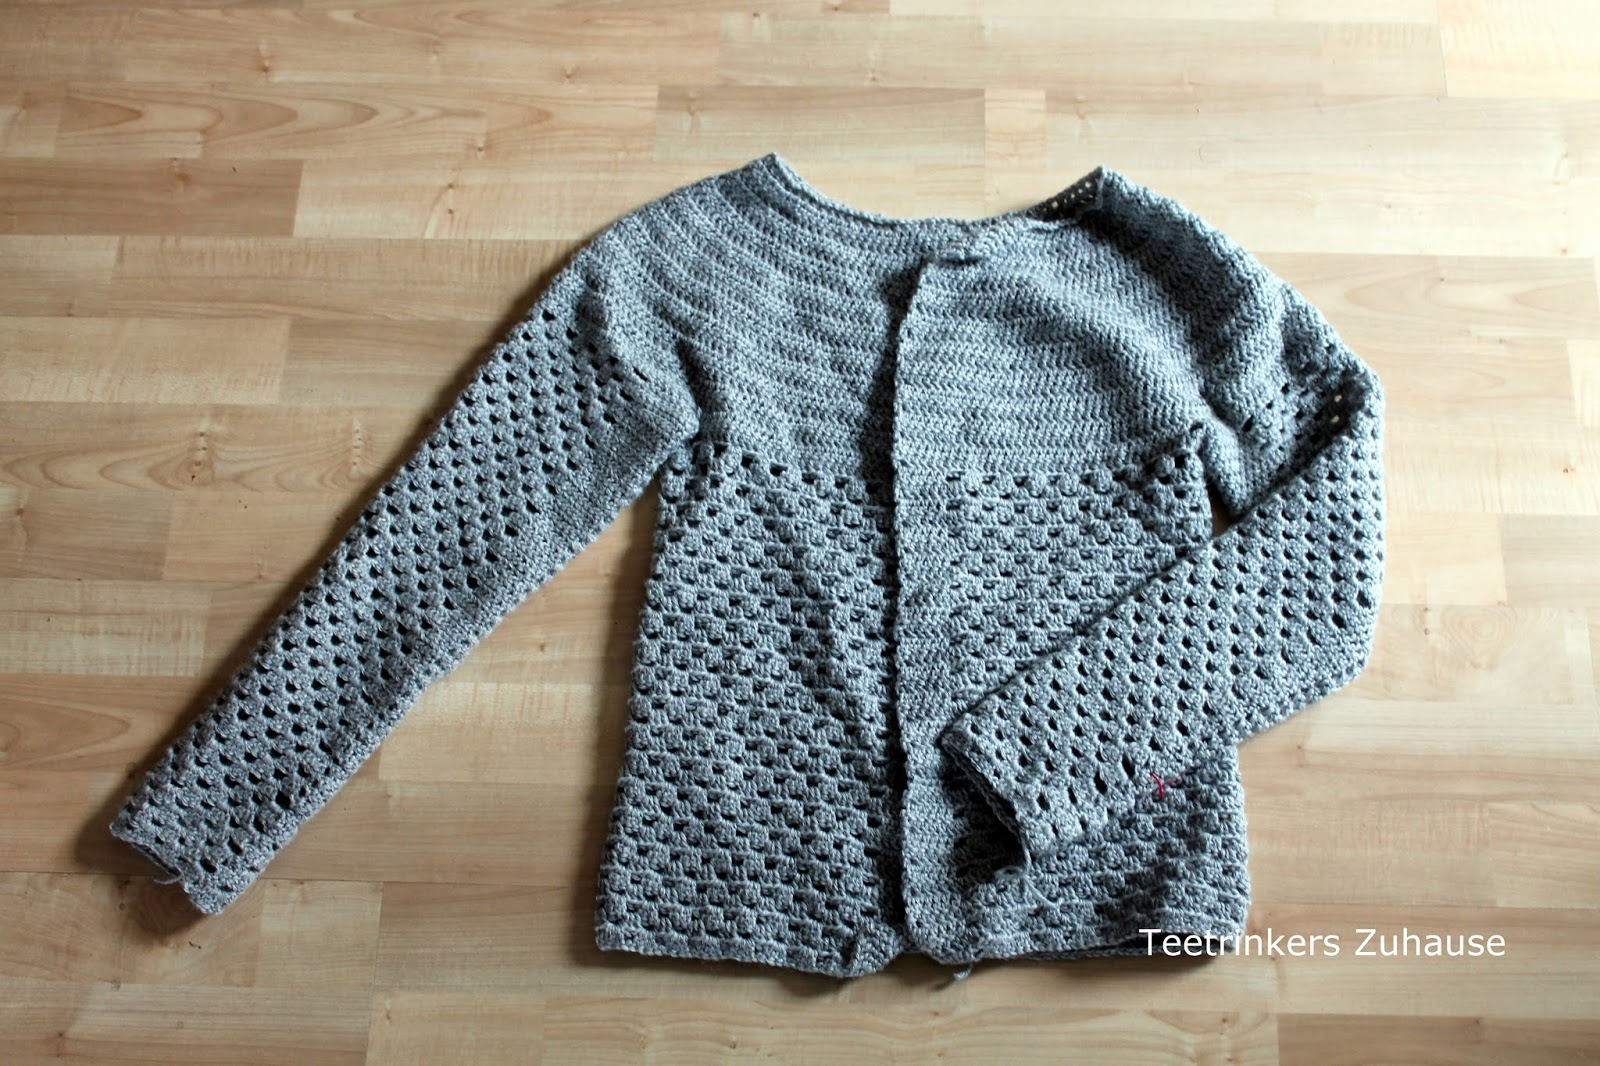 Teetrinkers Zuhause Strickjacke